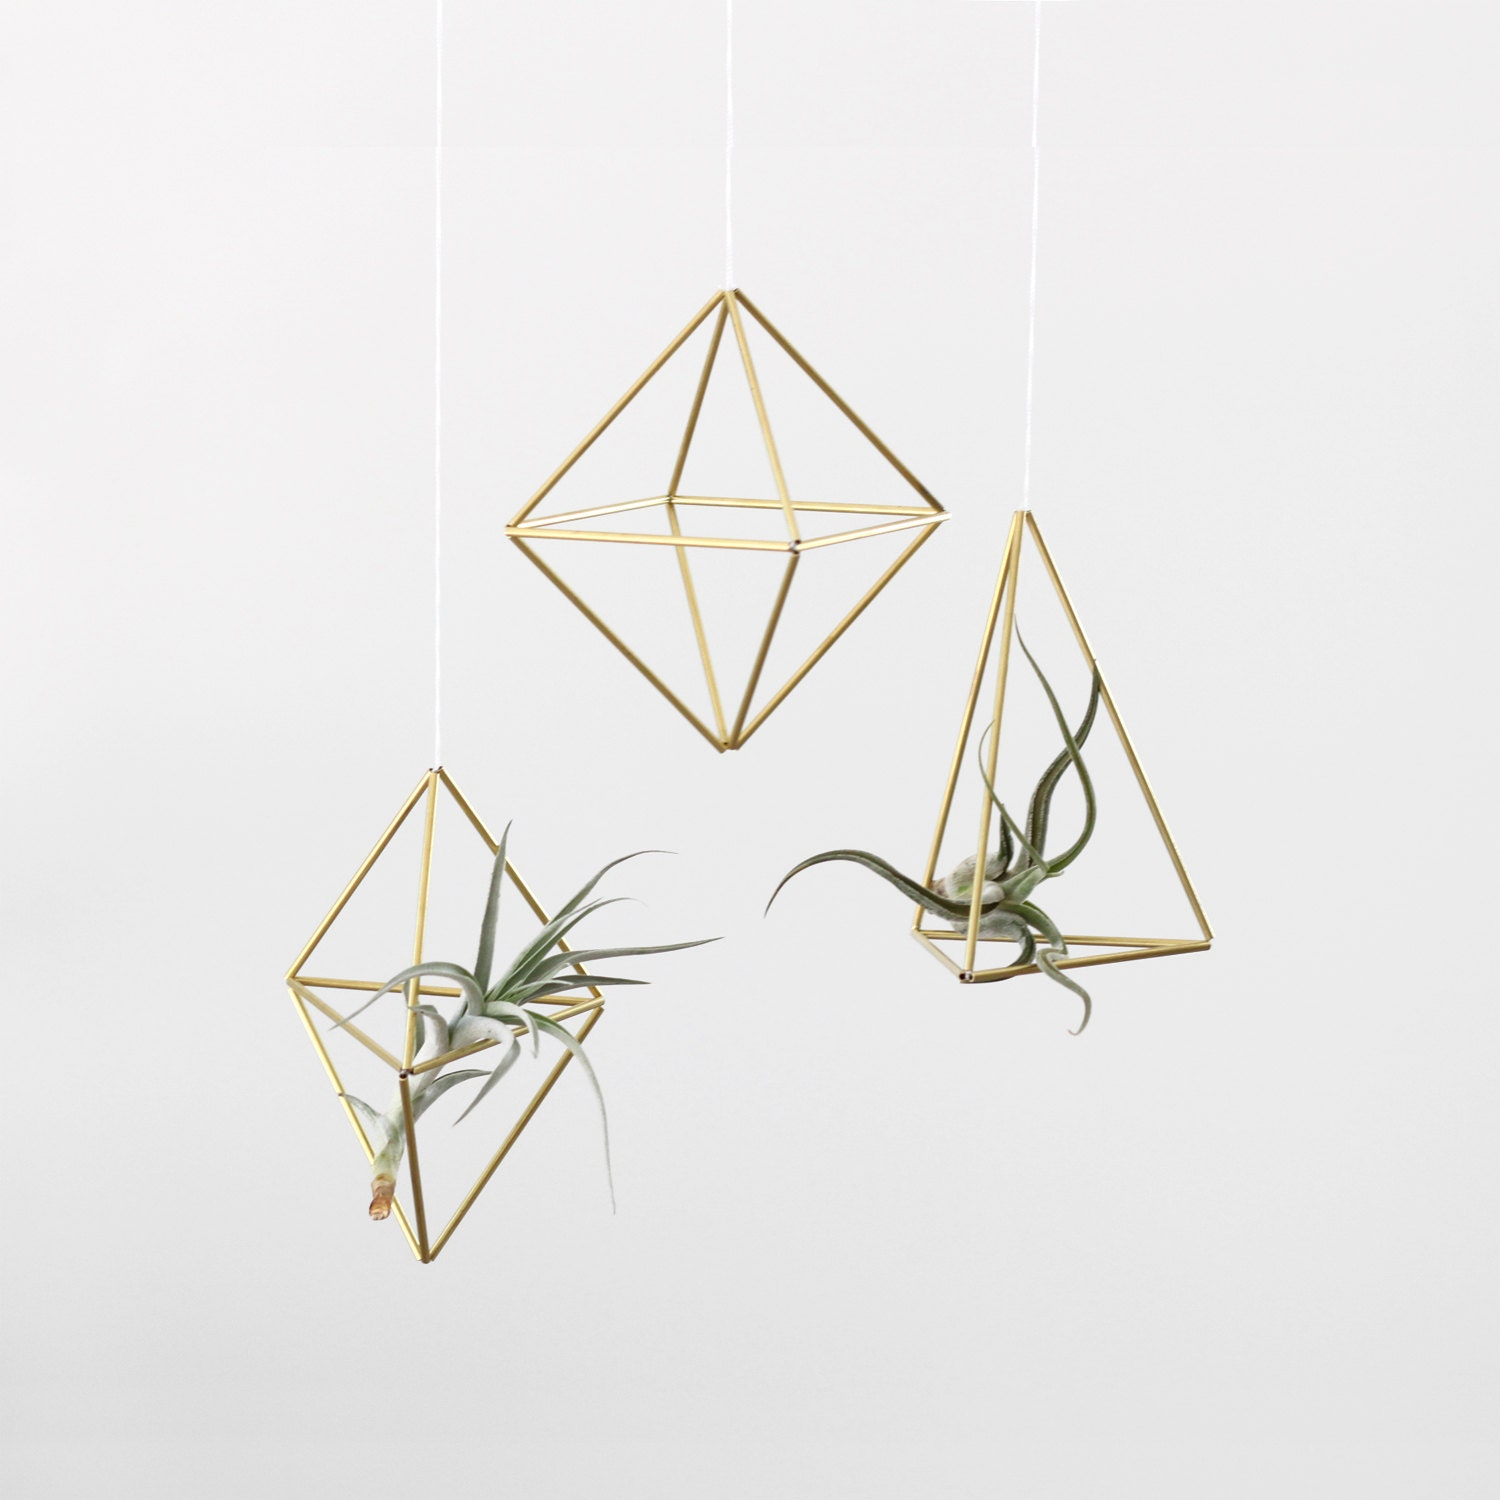 set of 3 brass himmeli air plant holders hanging mobile ForGeometric Air Plant Holder